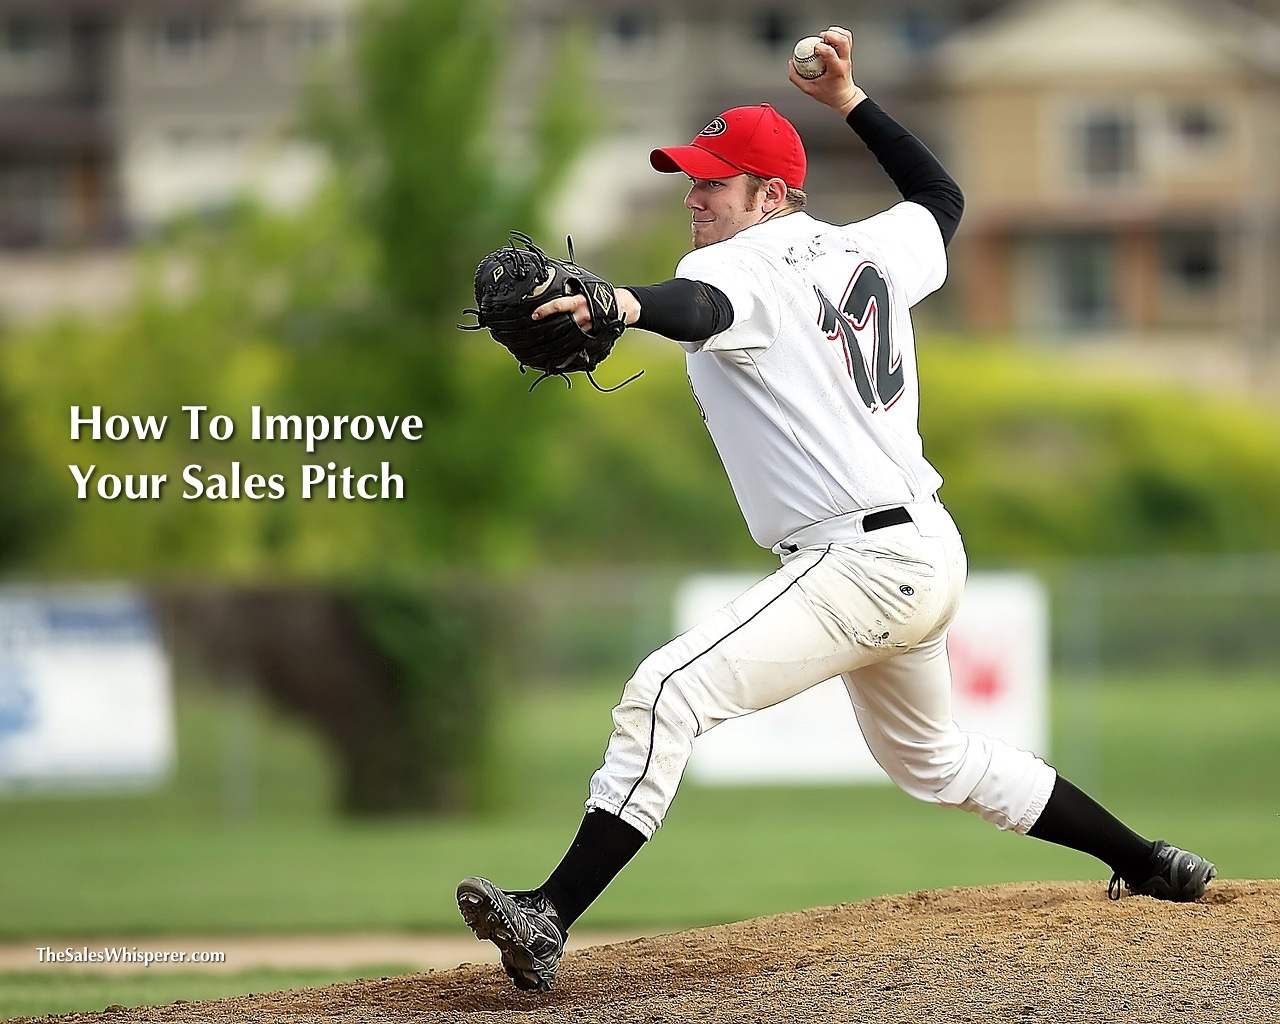 How To Improve Your Sales Pitch